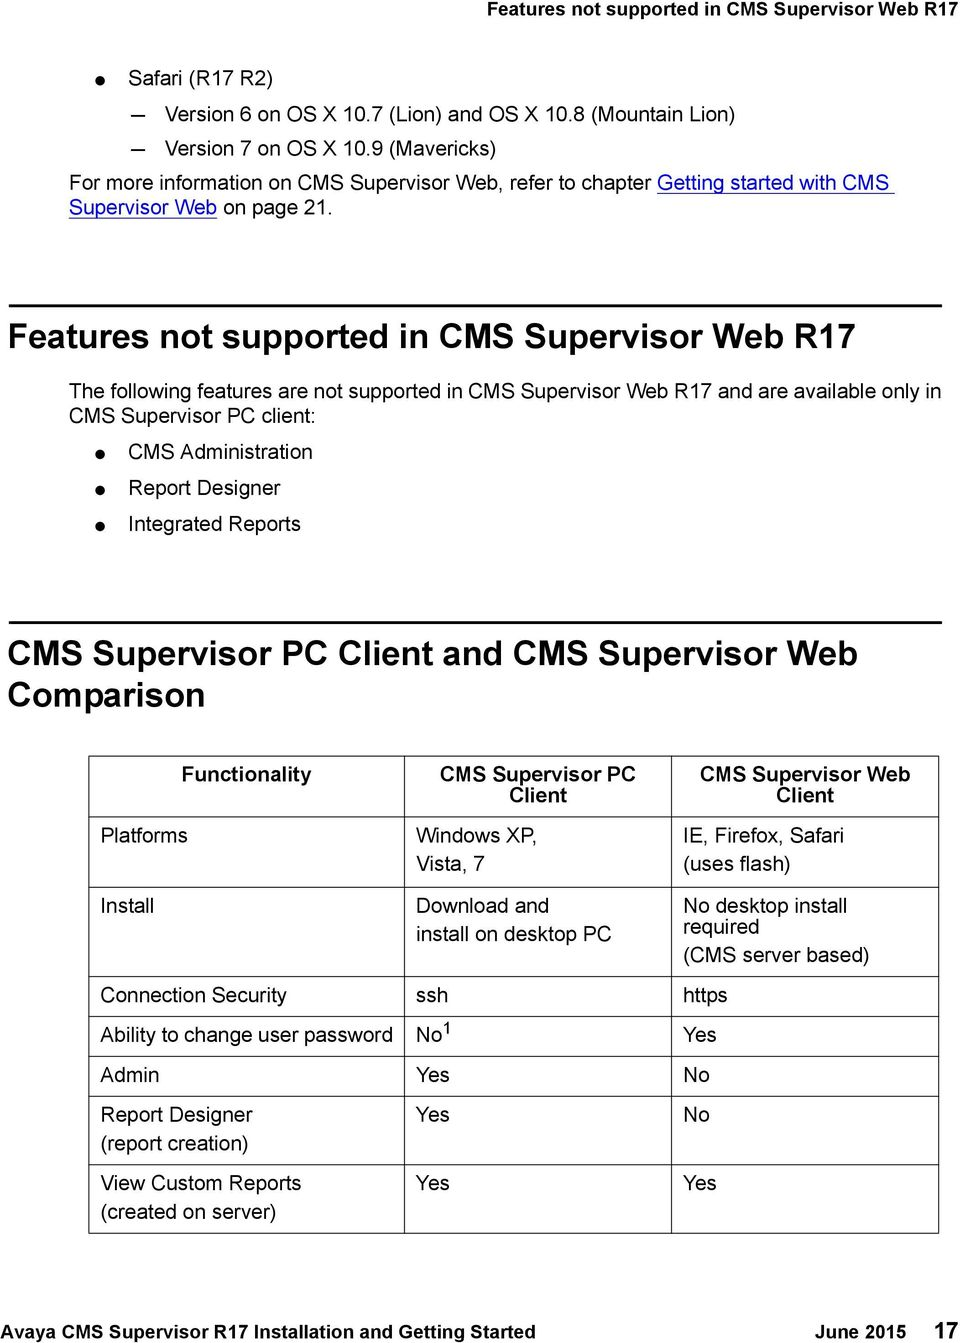 Features not supported in CMS Supervisor Web R17 The following features are  not supported in CMS